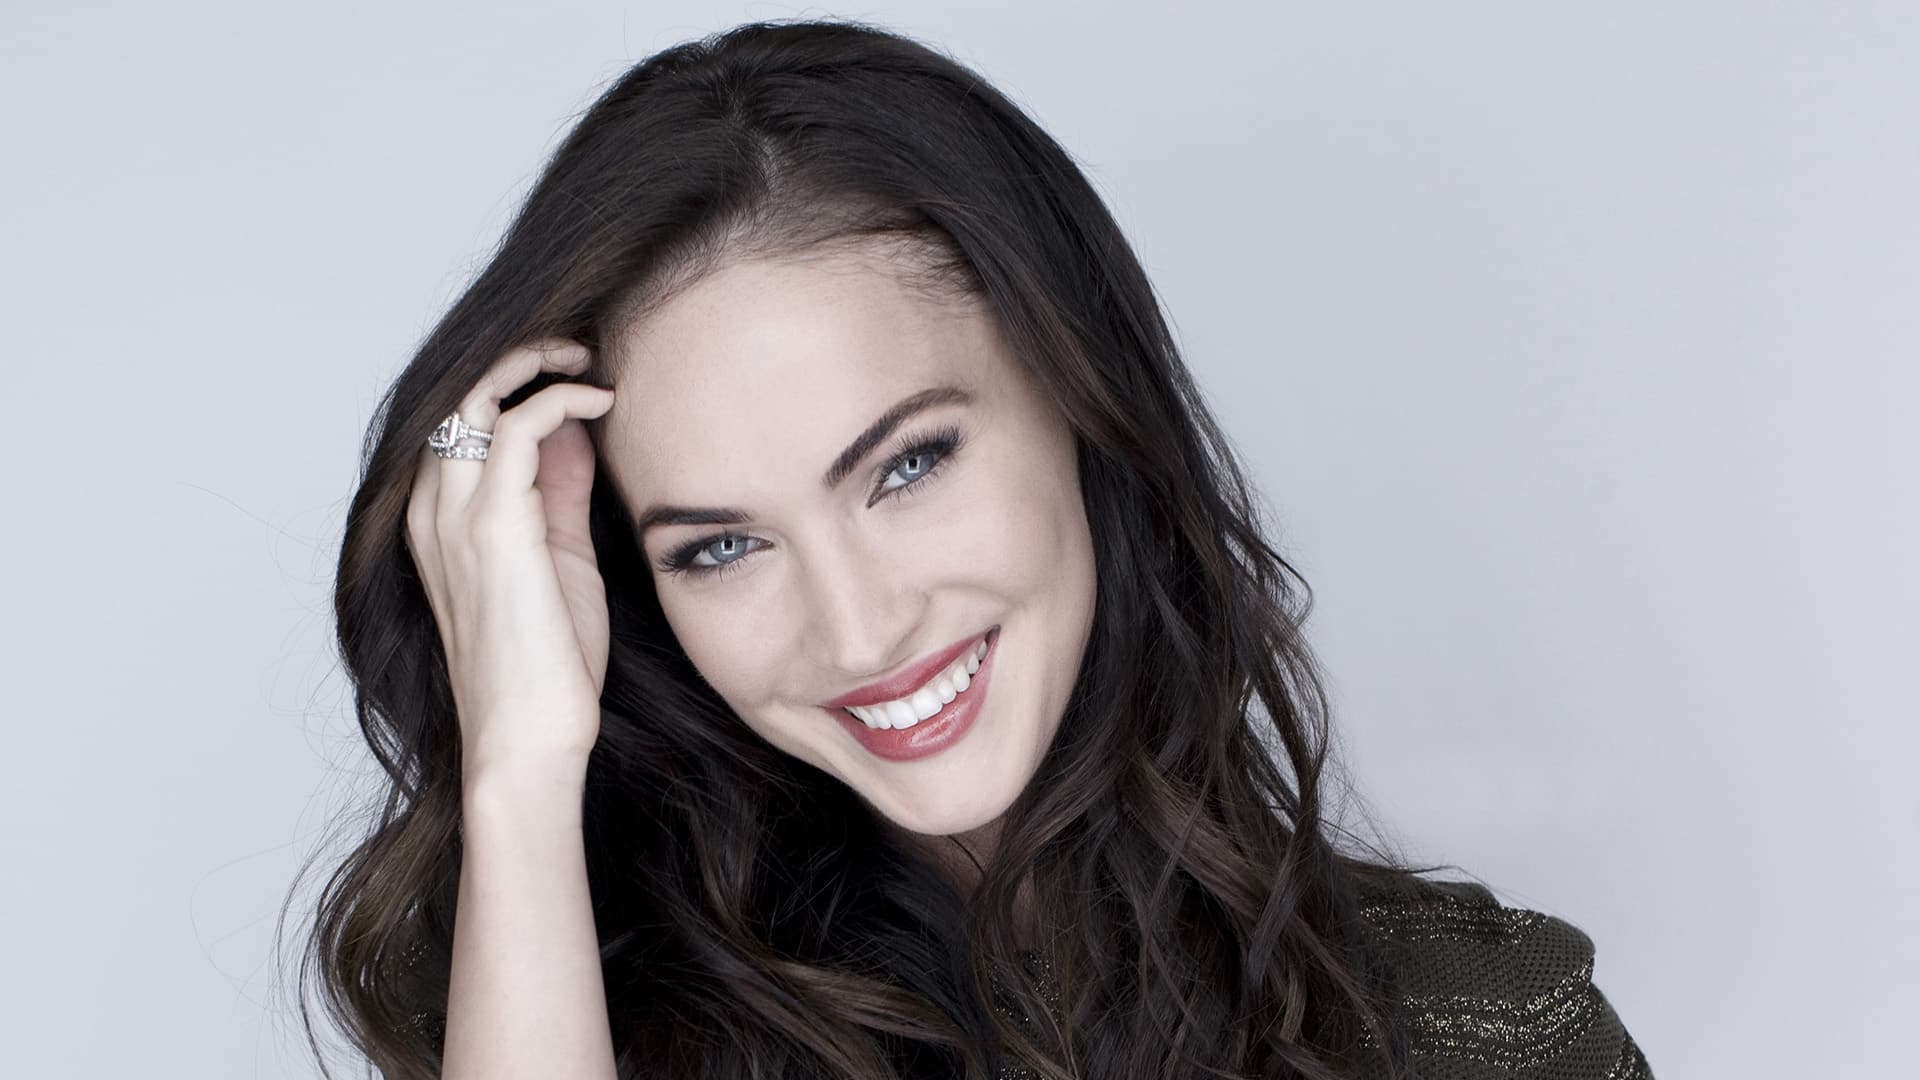 Megan Fox smiling wallpapers